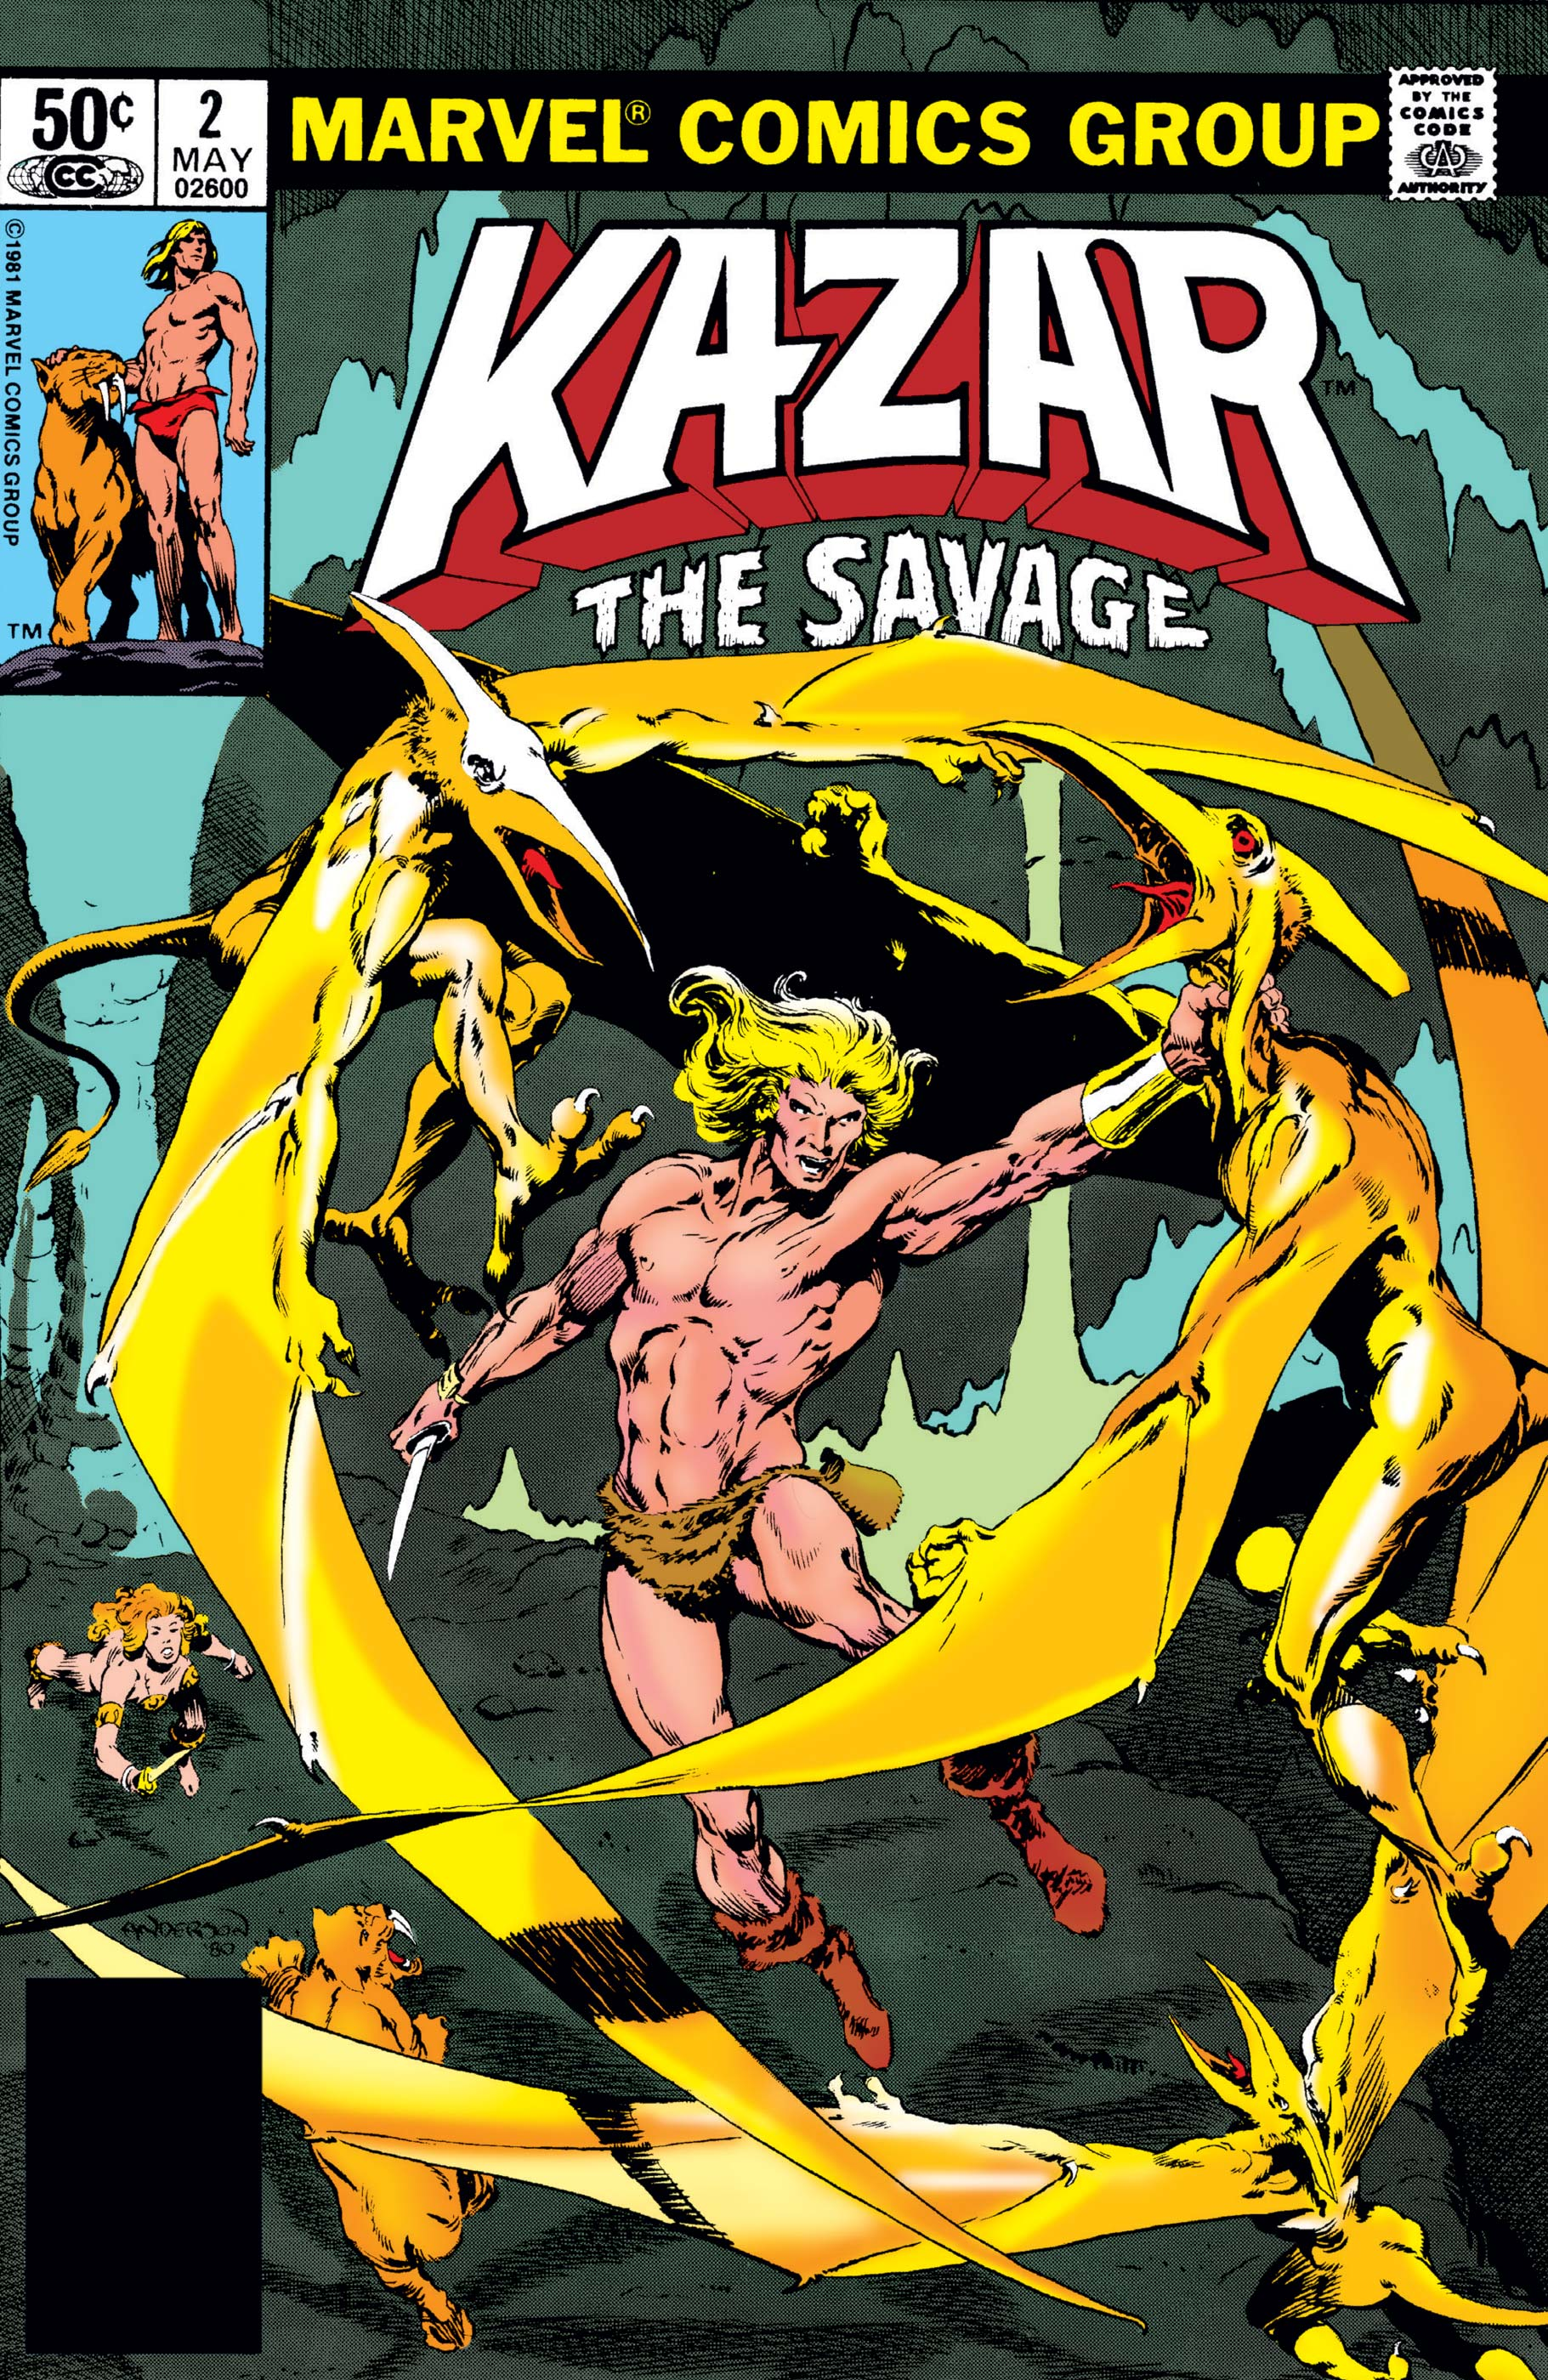 Ka-Zar the Savage (1981) #2